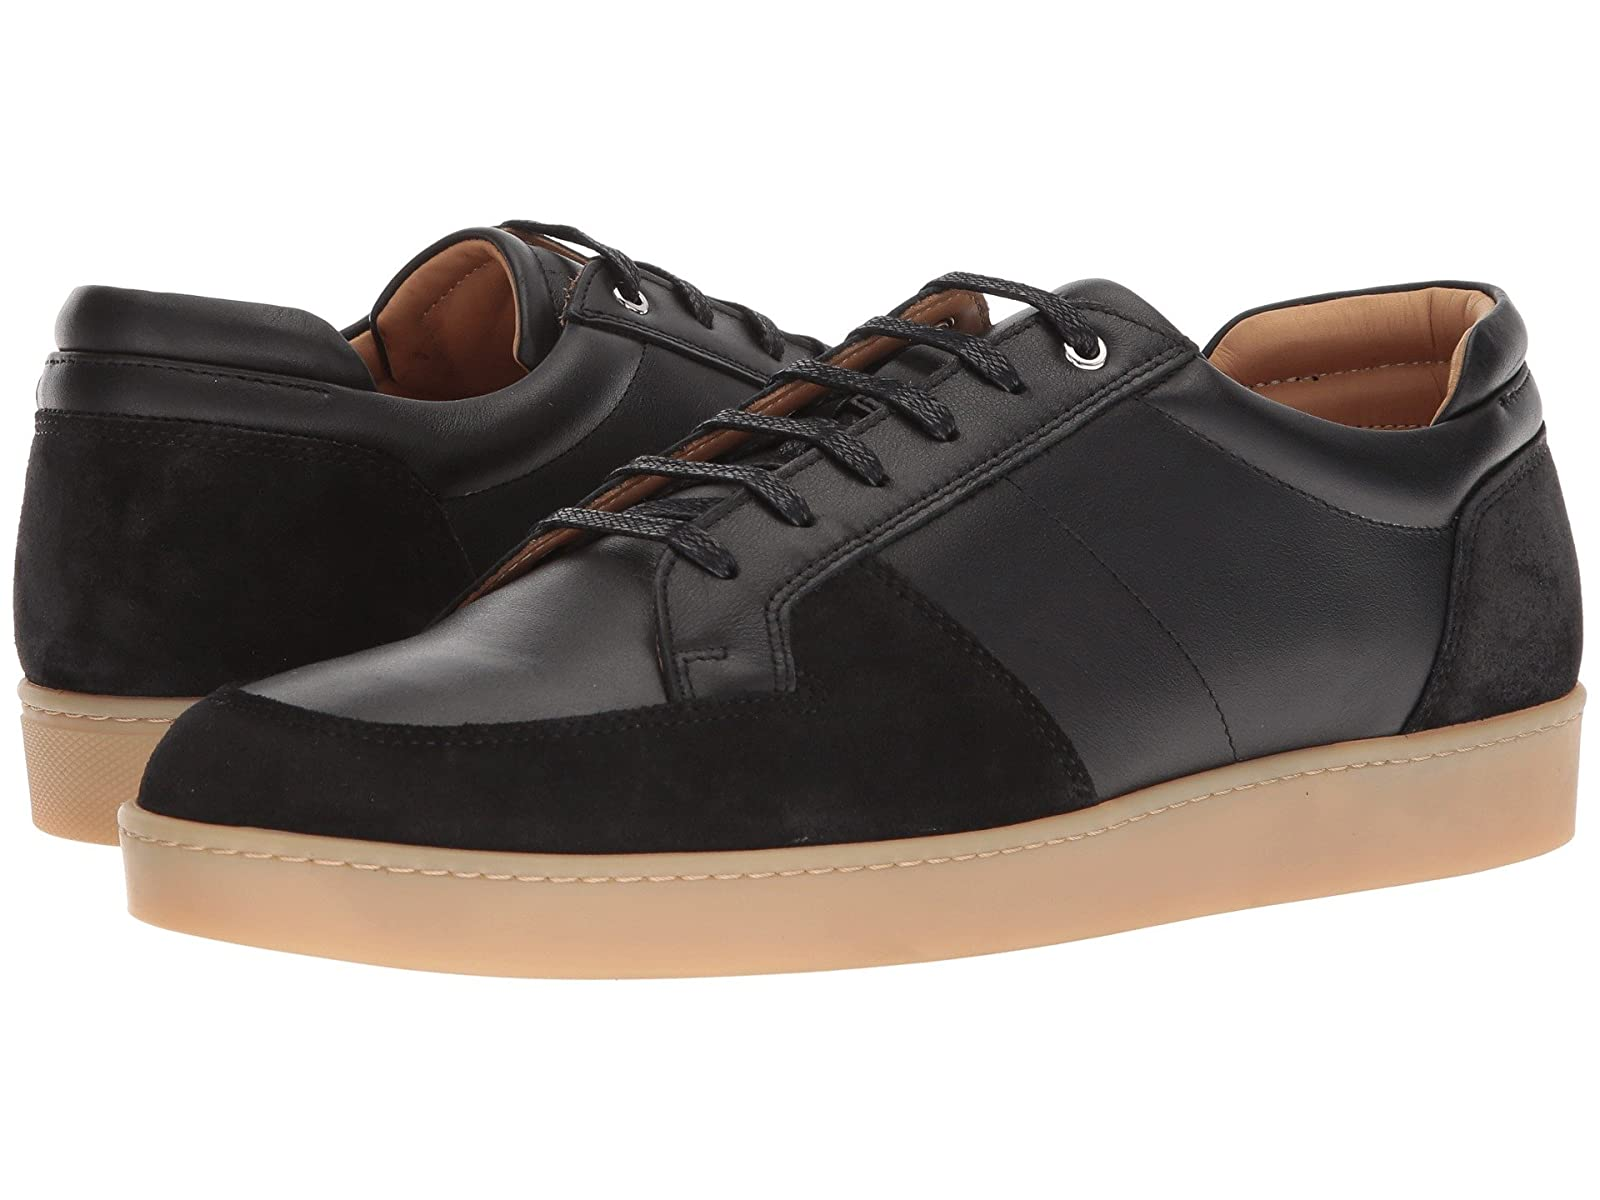 WANT Les Essentiels Lydd Gum Sole SneakerAtmospheric grades have affordable shoes